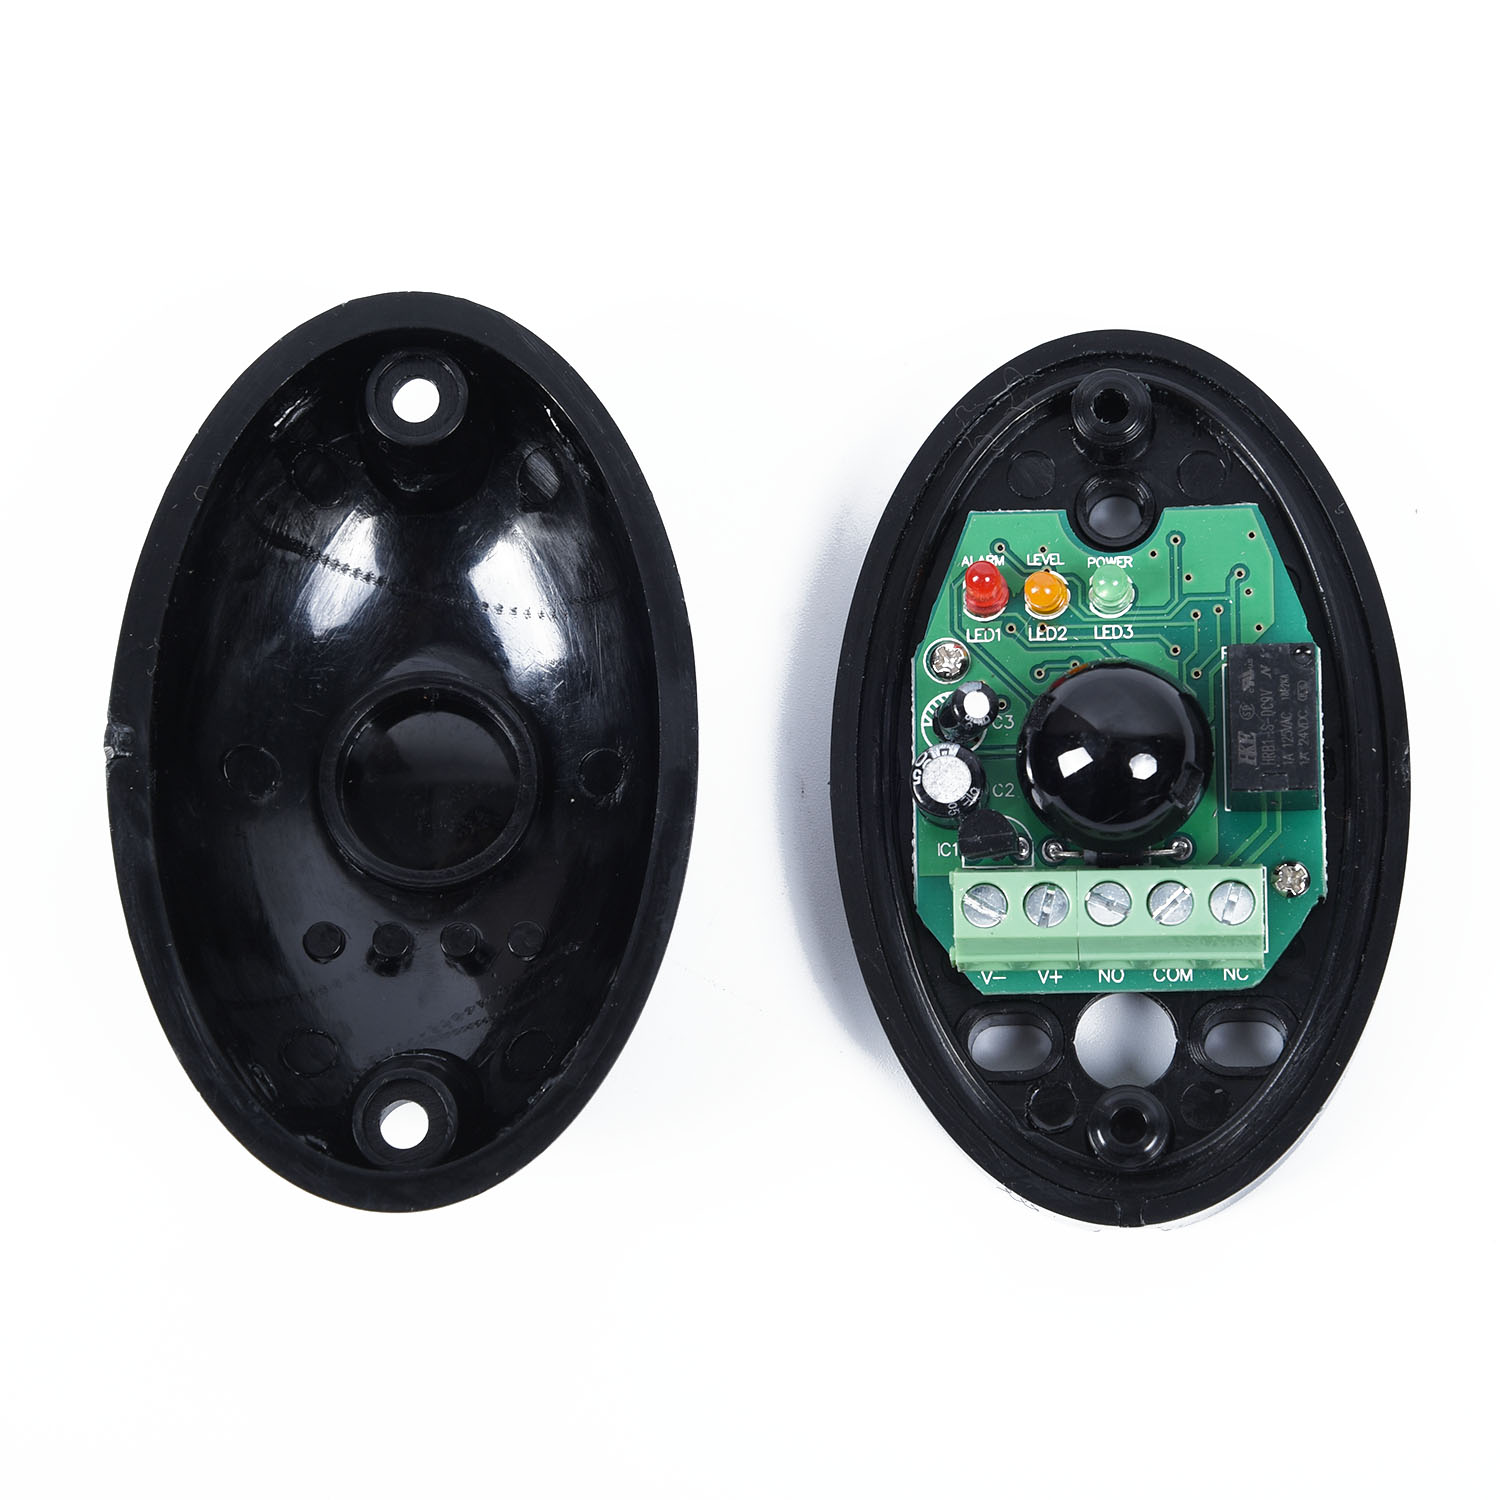 Black Photocell Infrared Sensor Beam 12 /24V For Sliding Gate Opener Infrared Safety Photo Cell Accessories High Quality